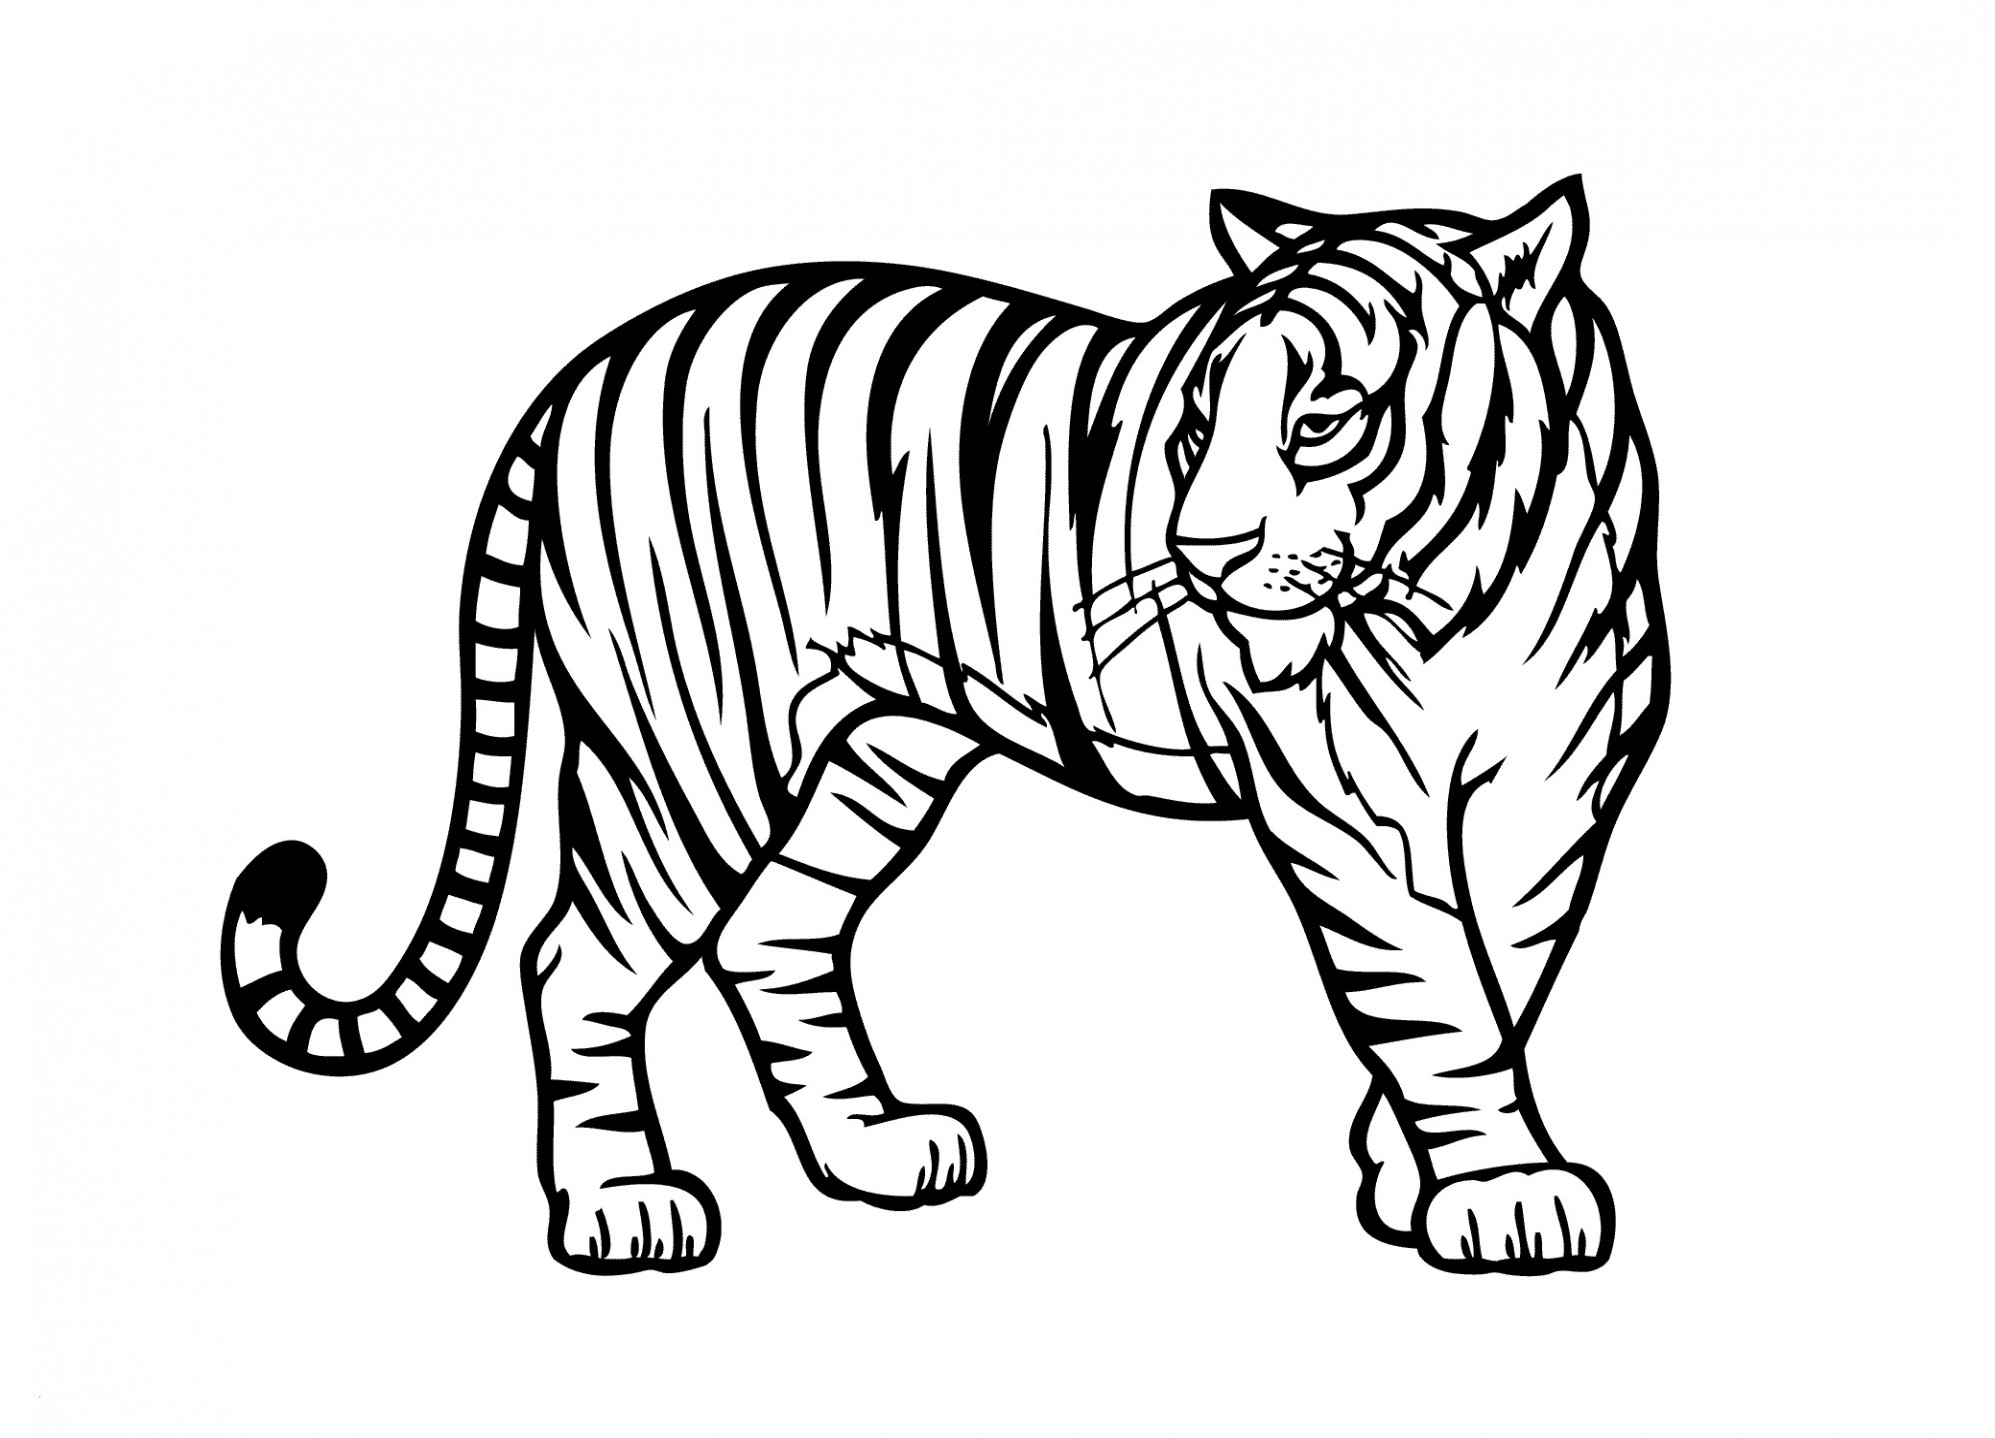 Zoo Animals Coloring Pages Coloring Pictures Of Tigers Zoo Animals Coloring Pages Elegant Rick